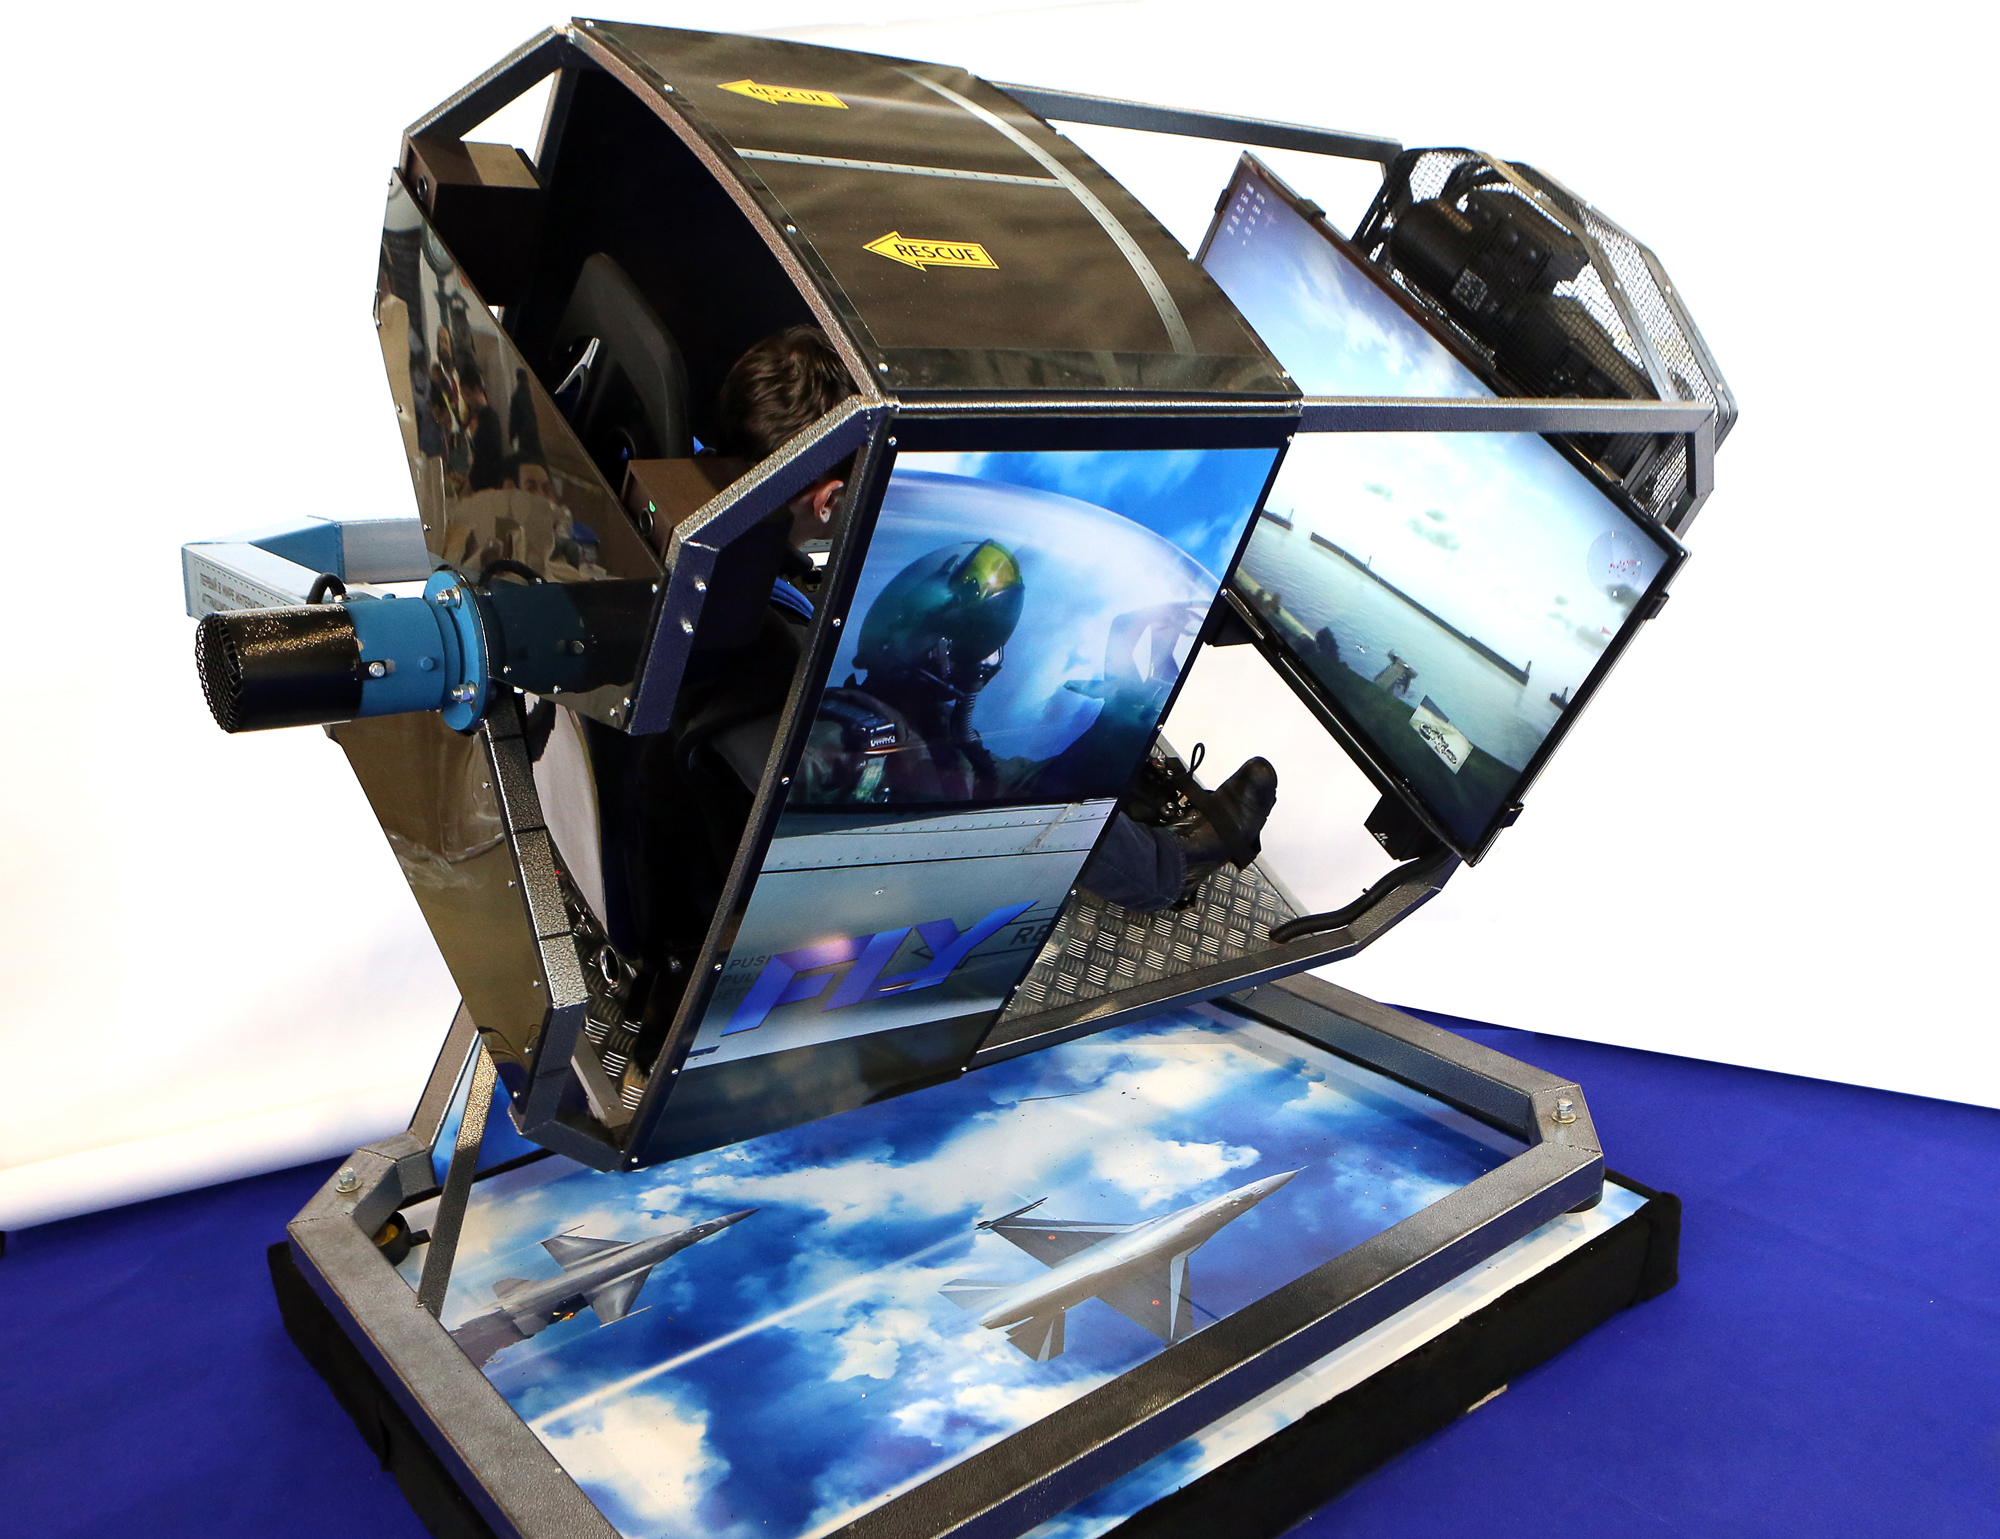 About simulator - FLY-Motion - Flight simulator 360°